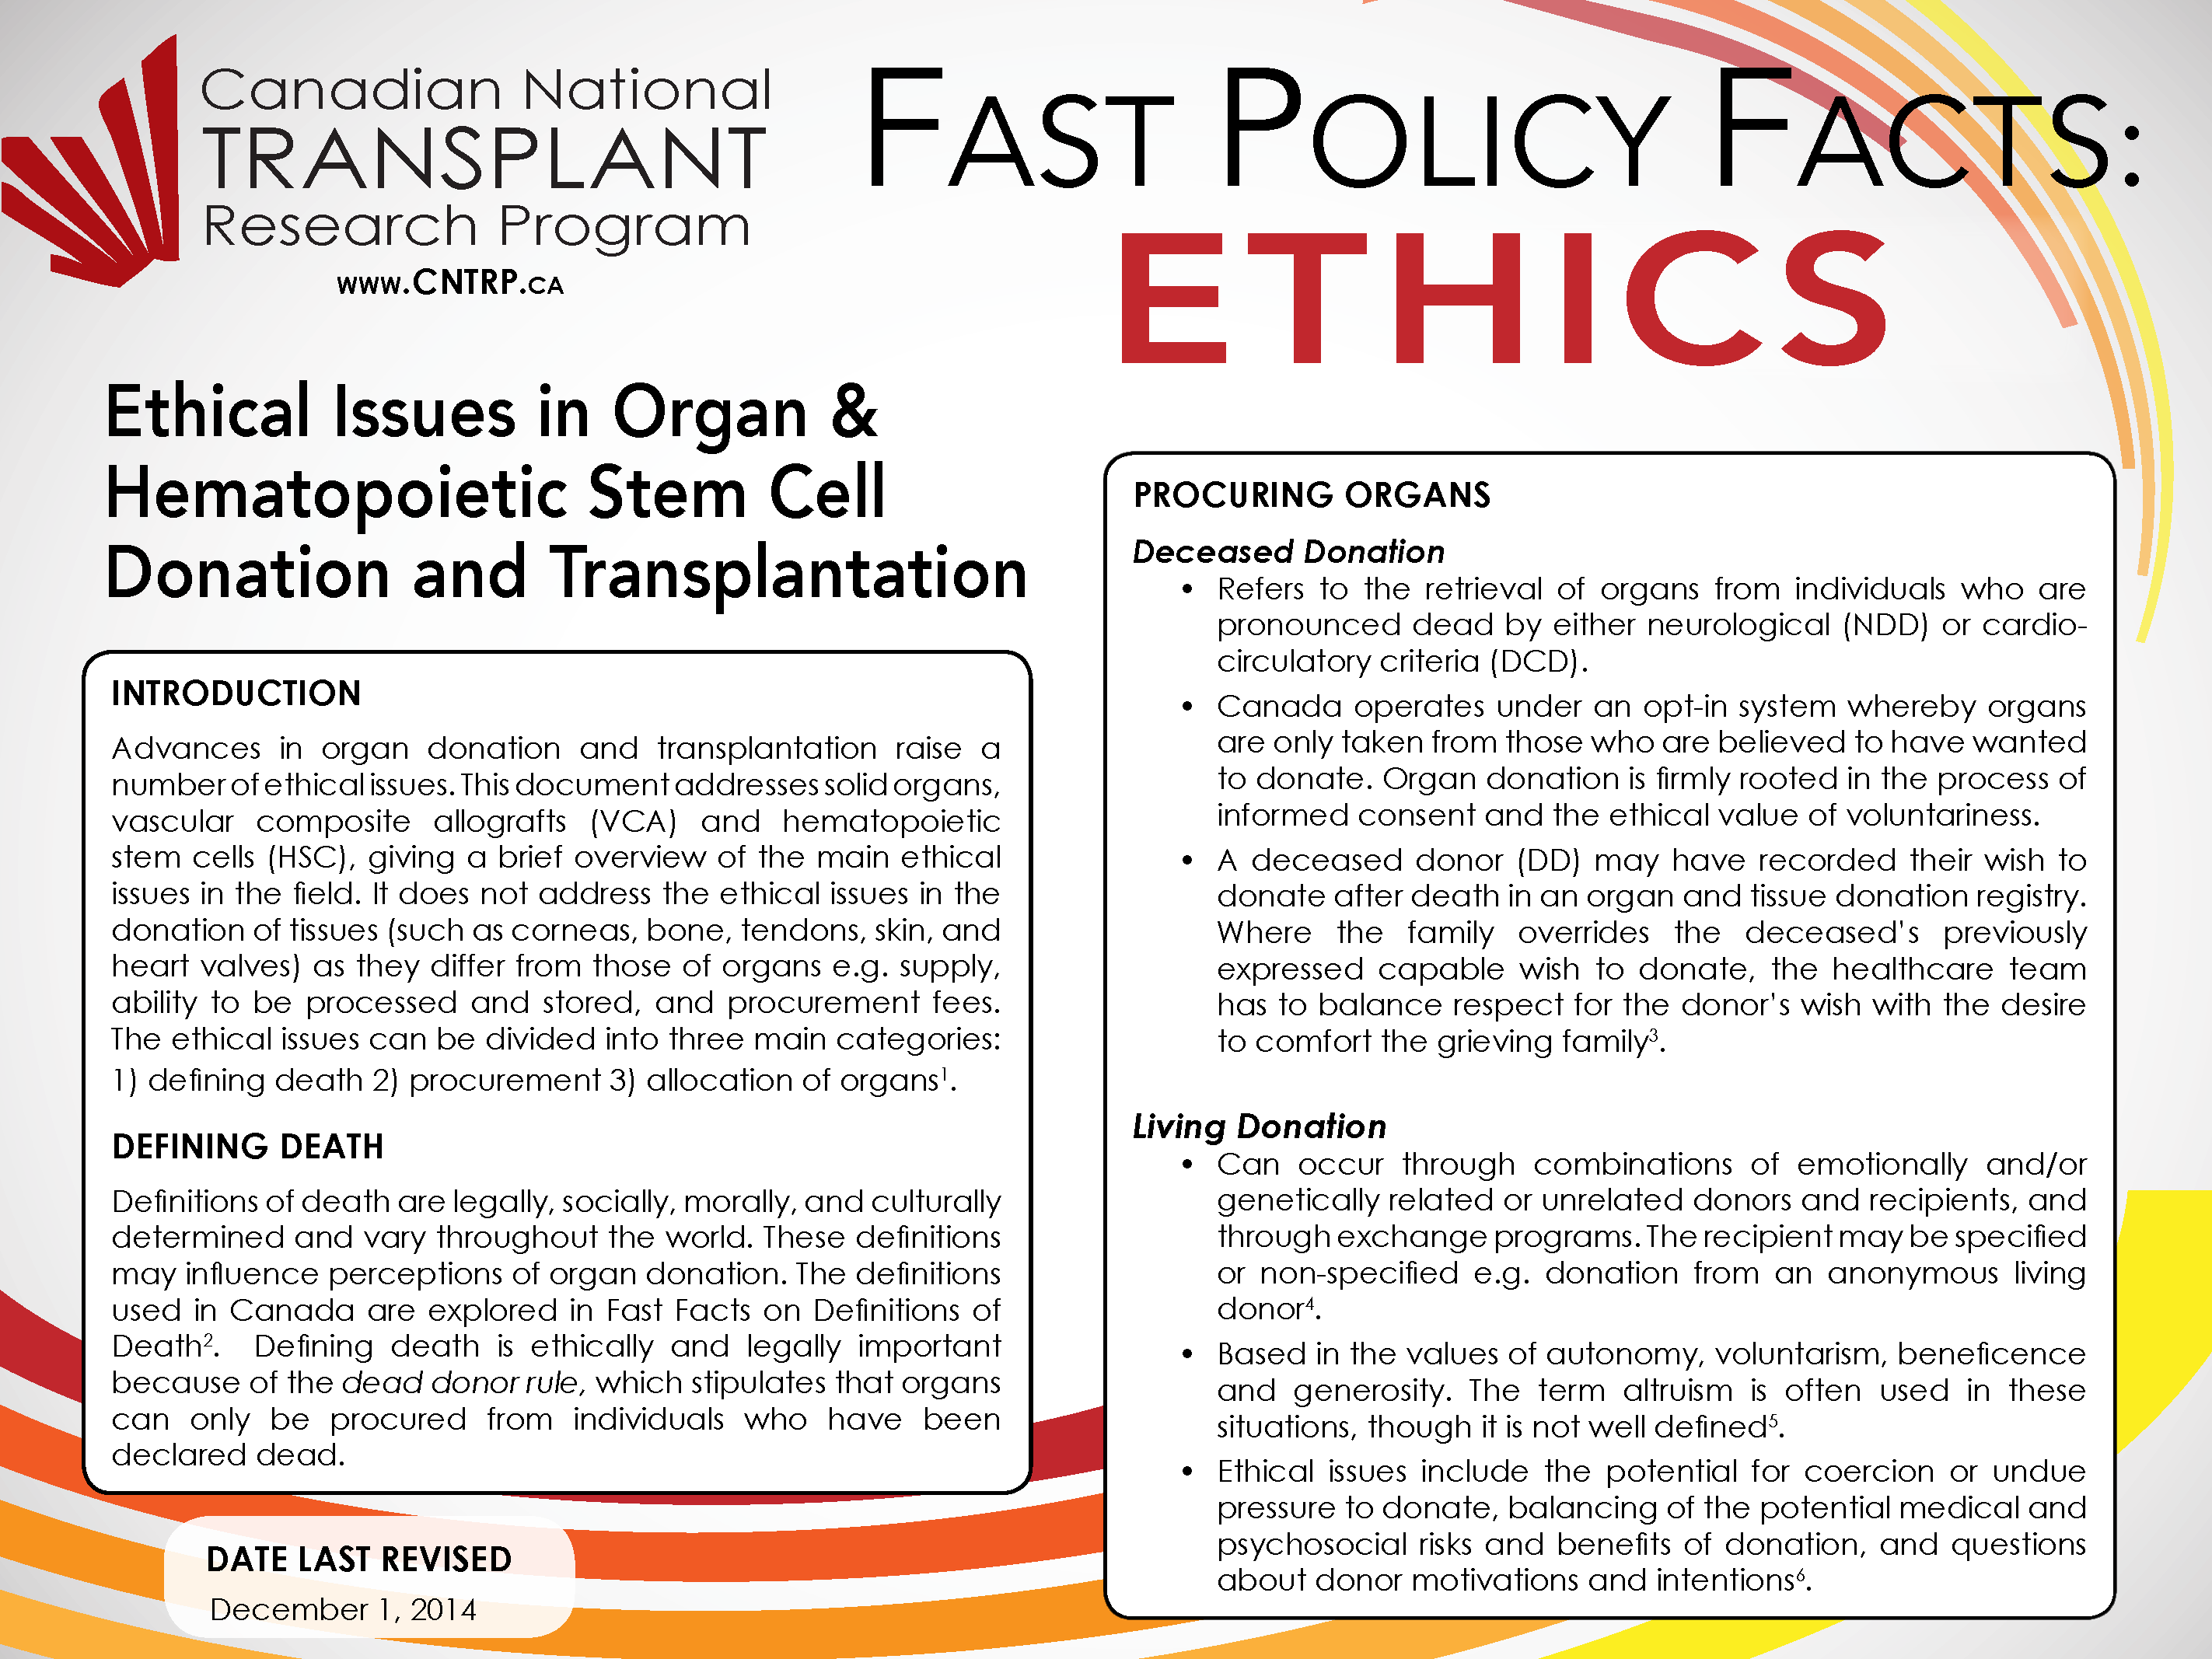 Organ Transplant Ethics Essay Donations Available People Who Passed Away Term Papers There Were Only  About  Basic Principle Then Organs Be Carried Out Biggest Best Bank Essay On Business Communication also Persuasive Essay Ideas For High School Essay Samples For High School